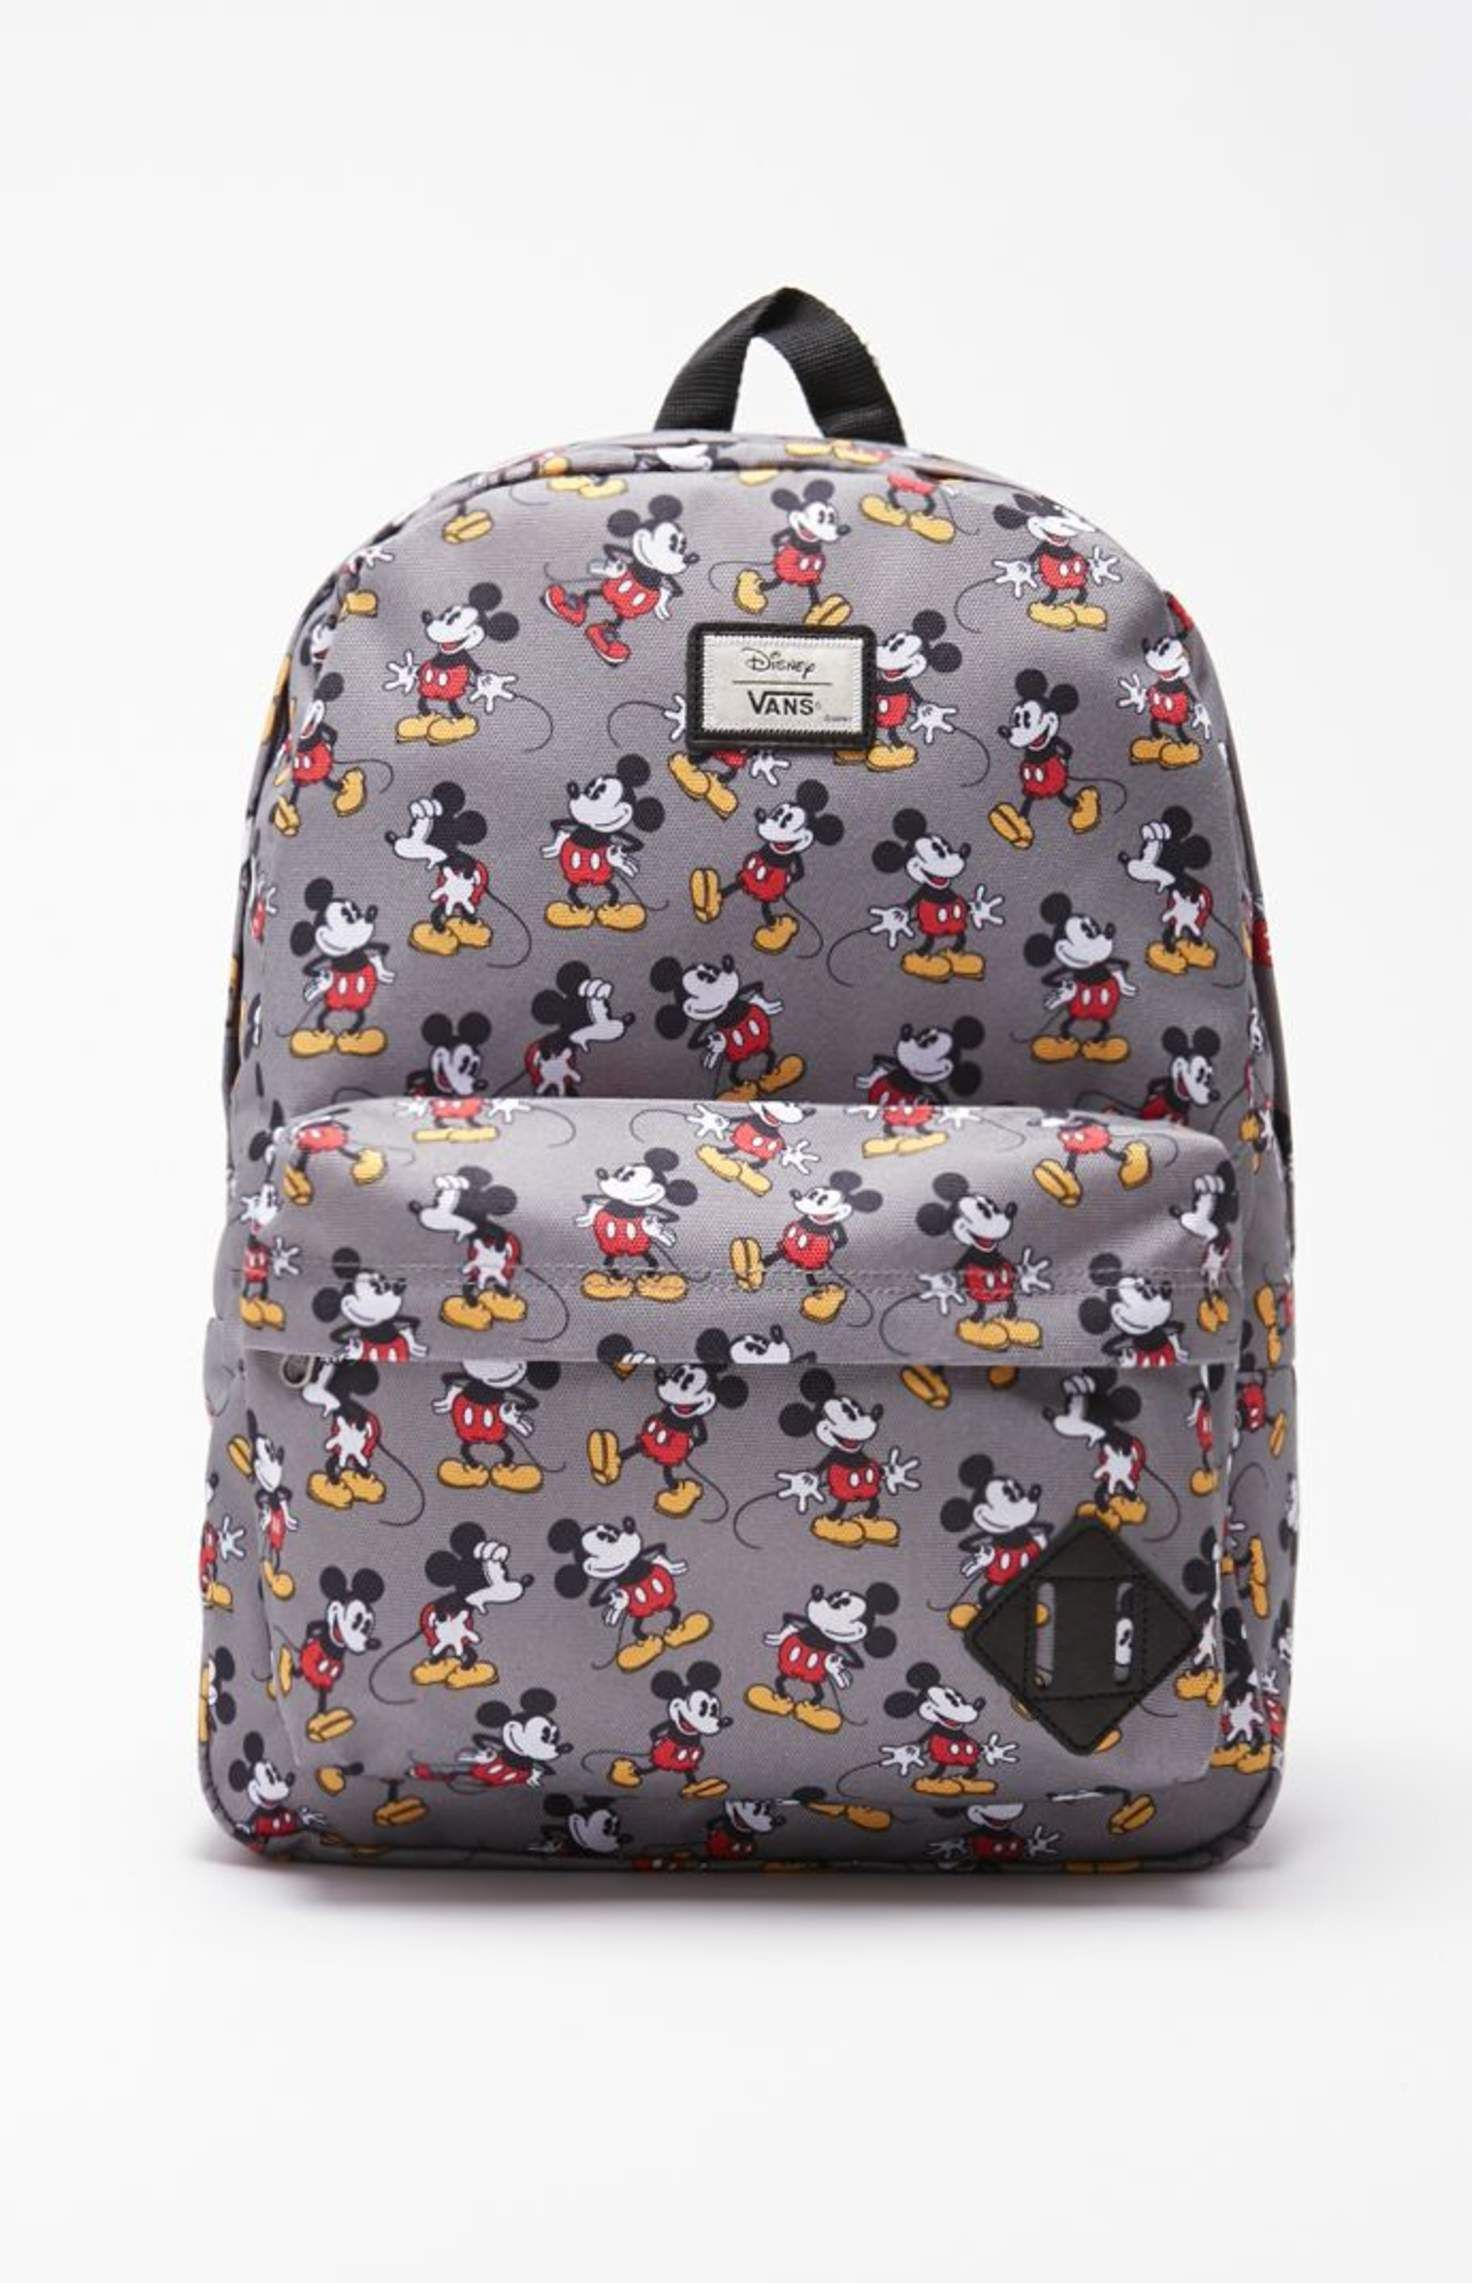 Vans - Disney Old Skool II Mickey Mouse School Backpack - Mens Backpacks -  Gray - NOSZ 81f1c6311e935